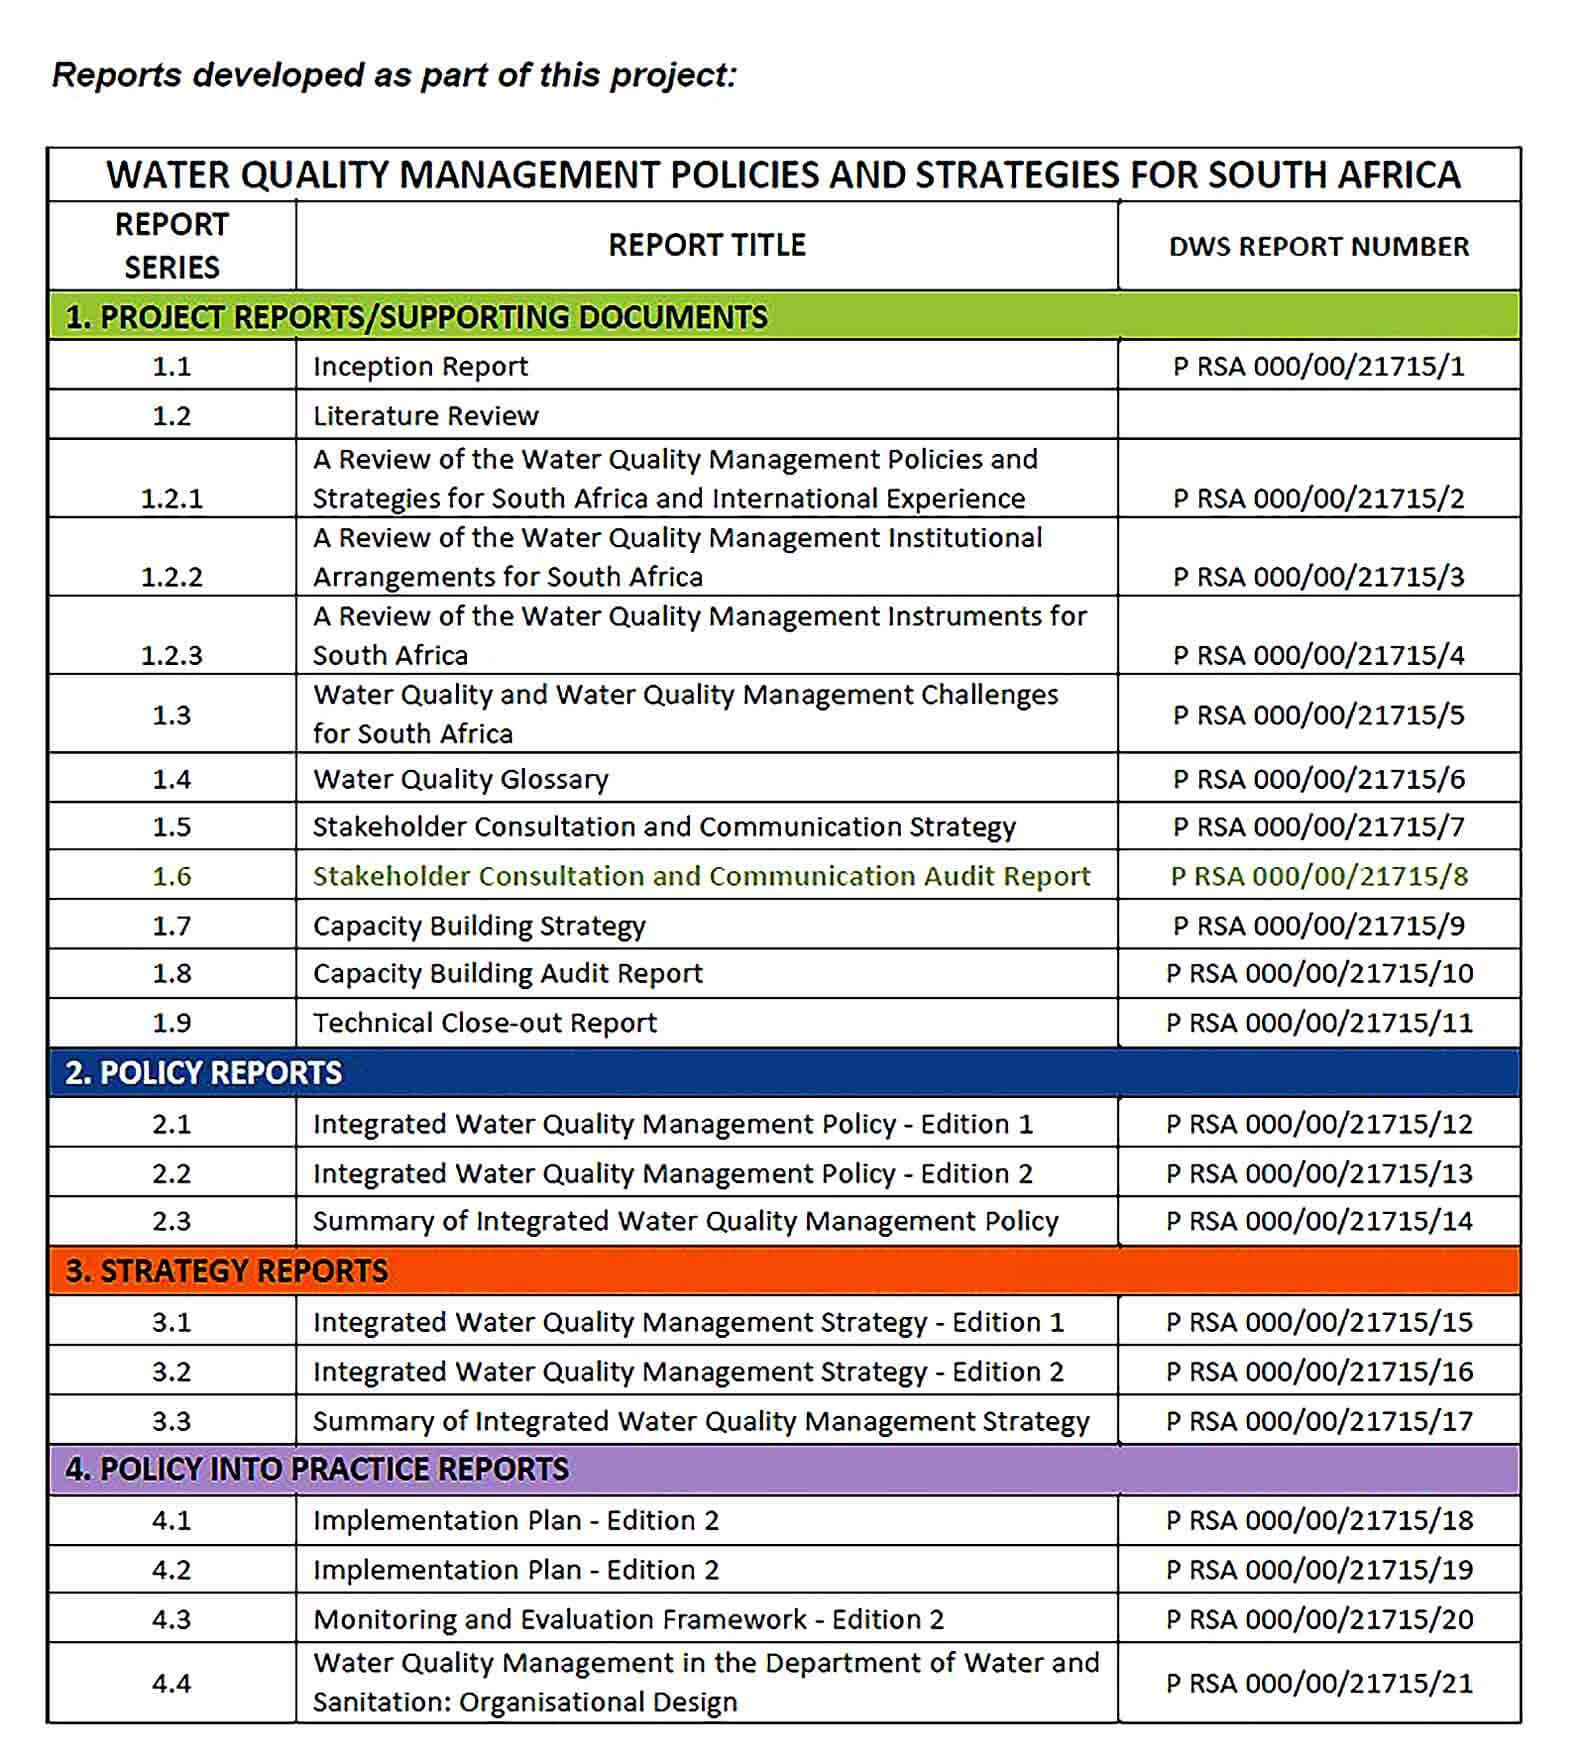 Sample Stakeholder Engagement and Communication Audit Report